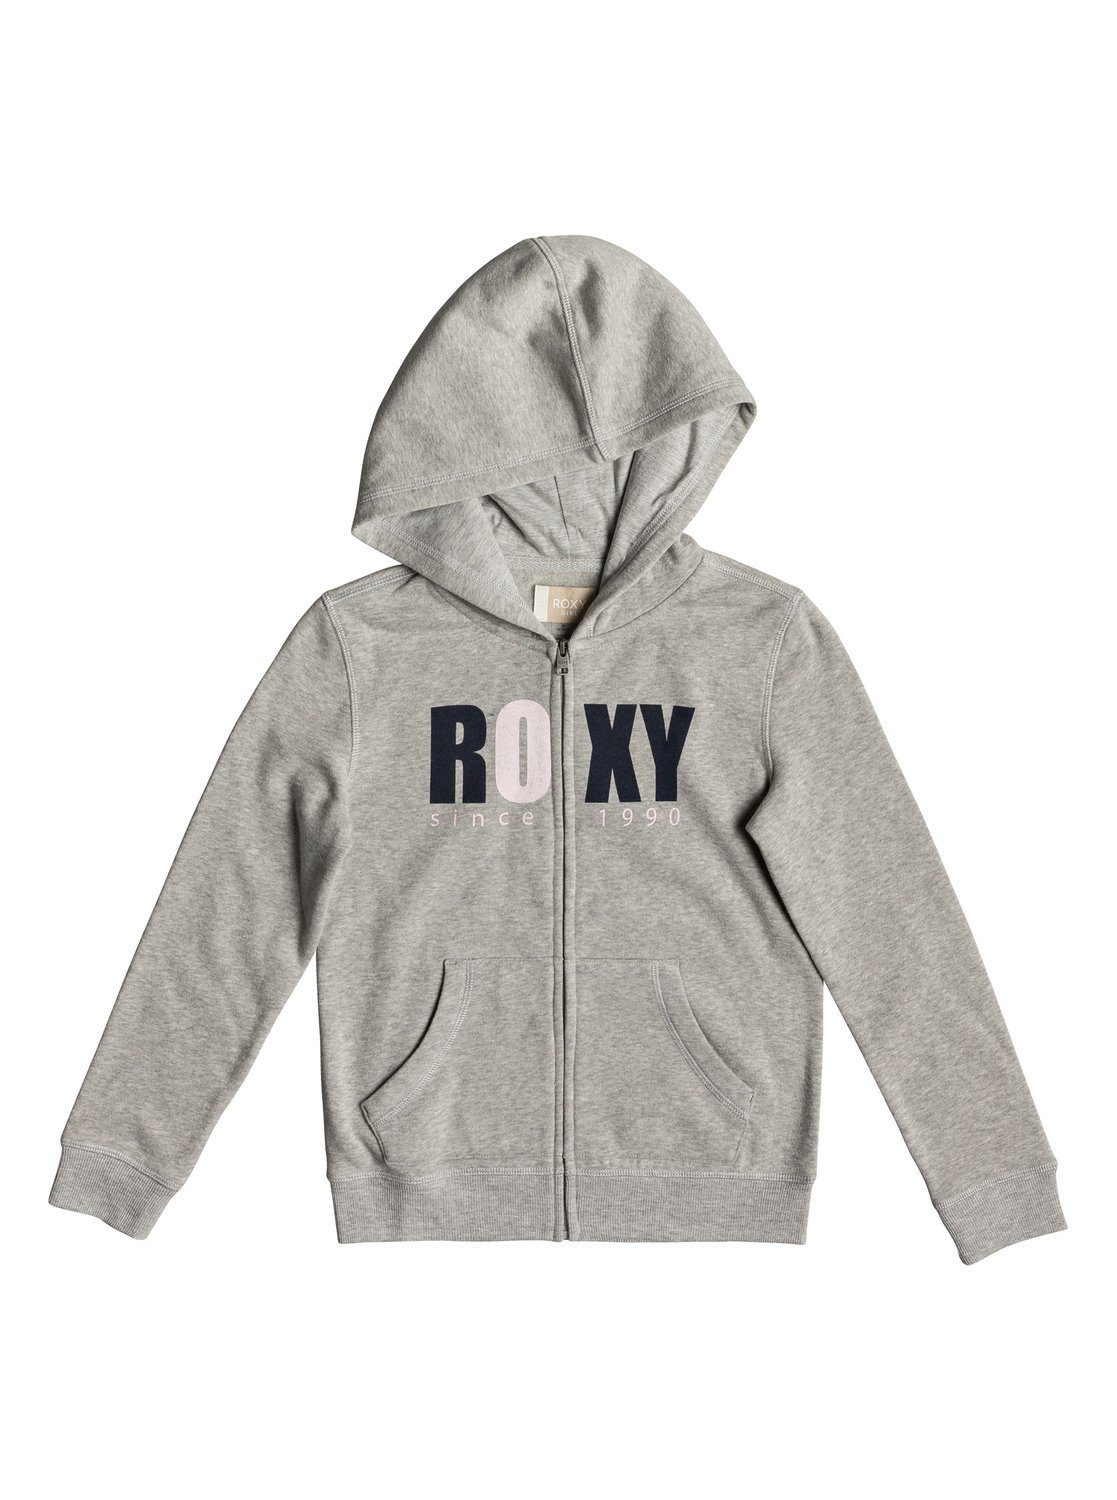 Roxy Sweatjacke »Girl Plans Bold Distress«